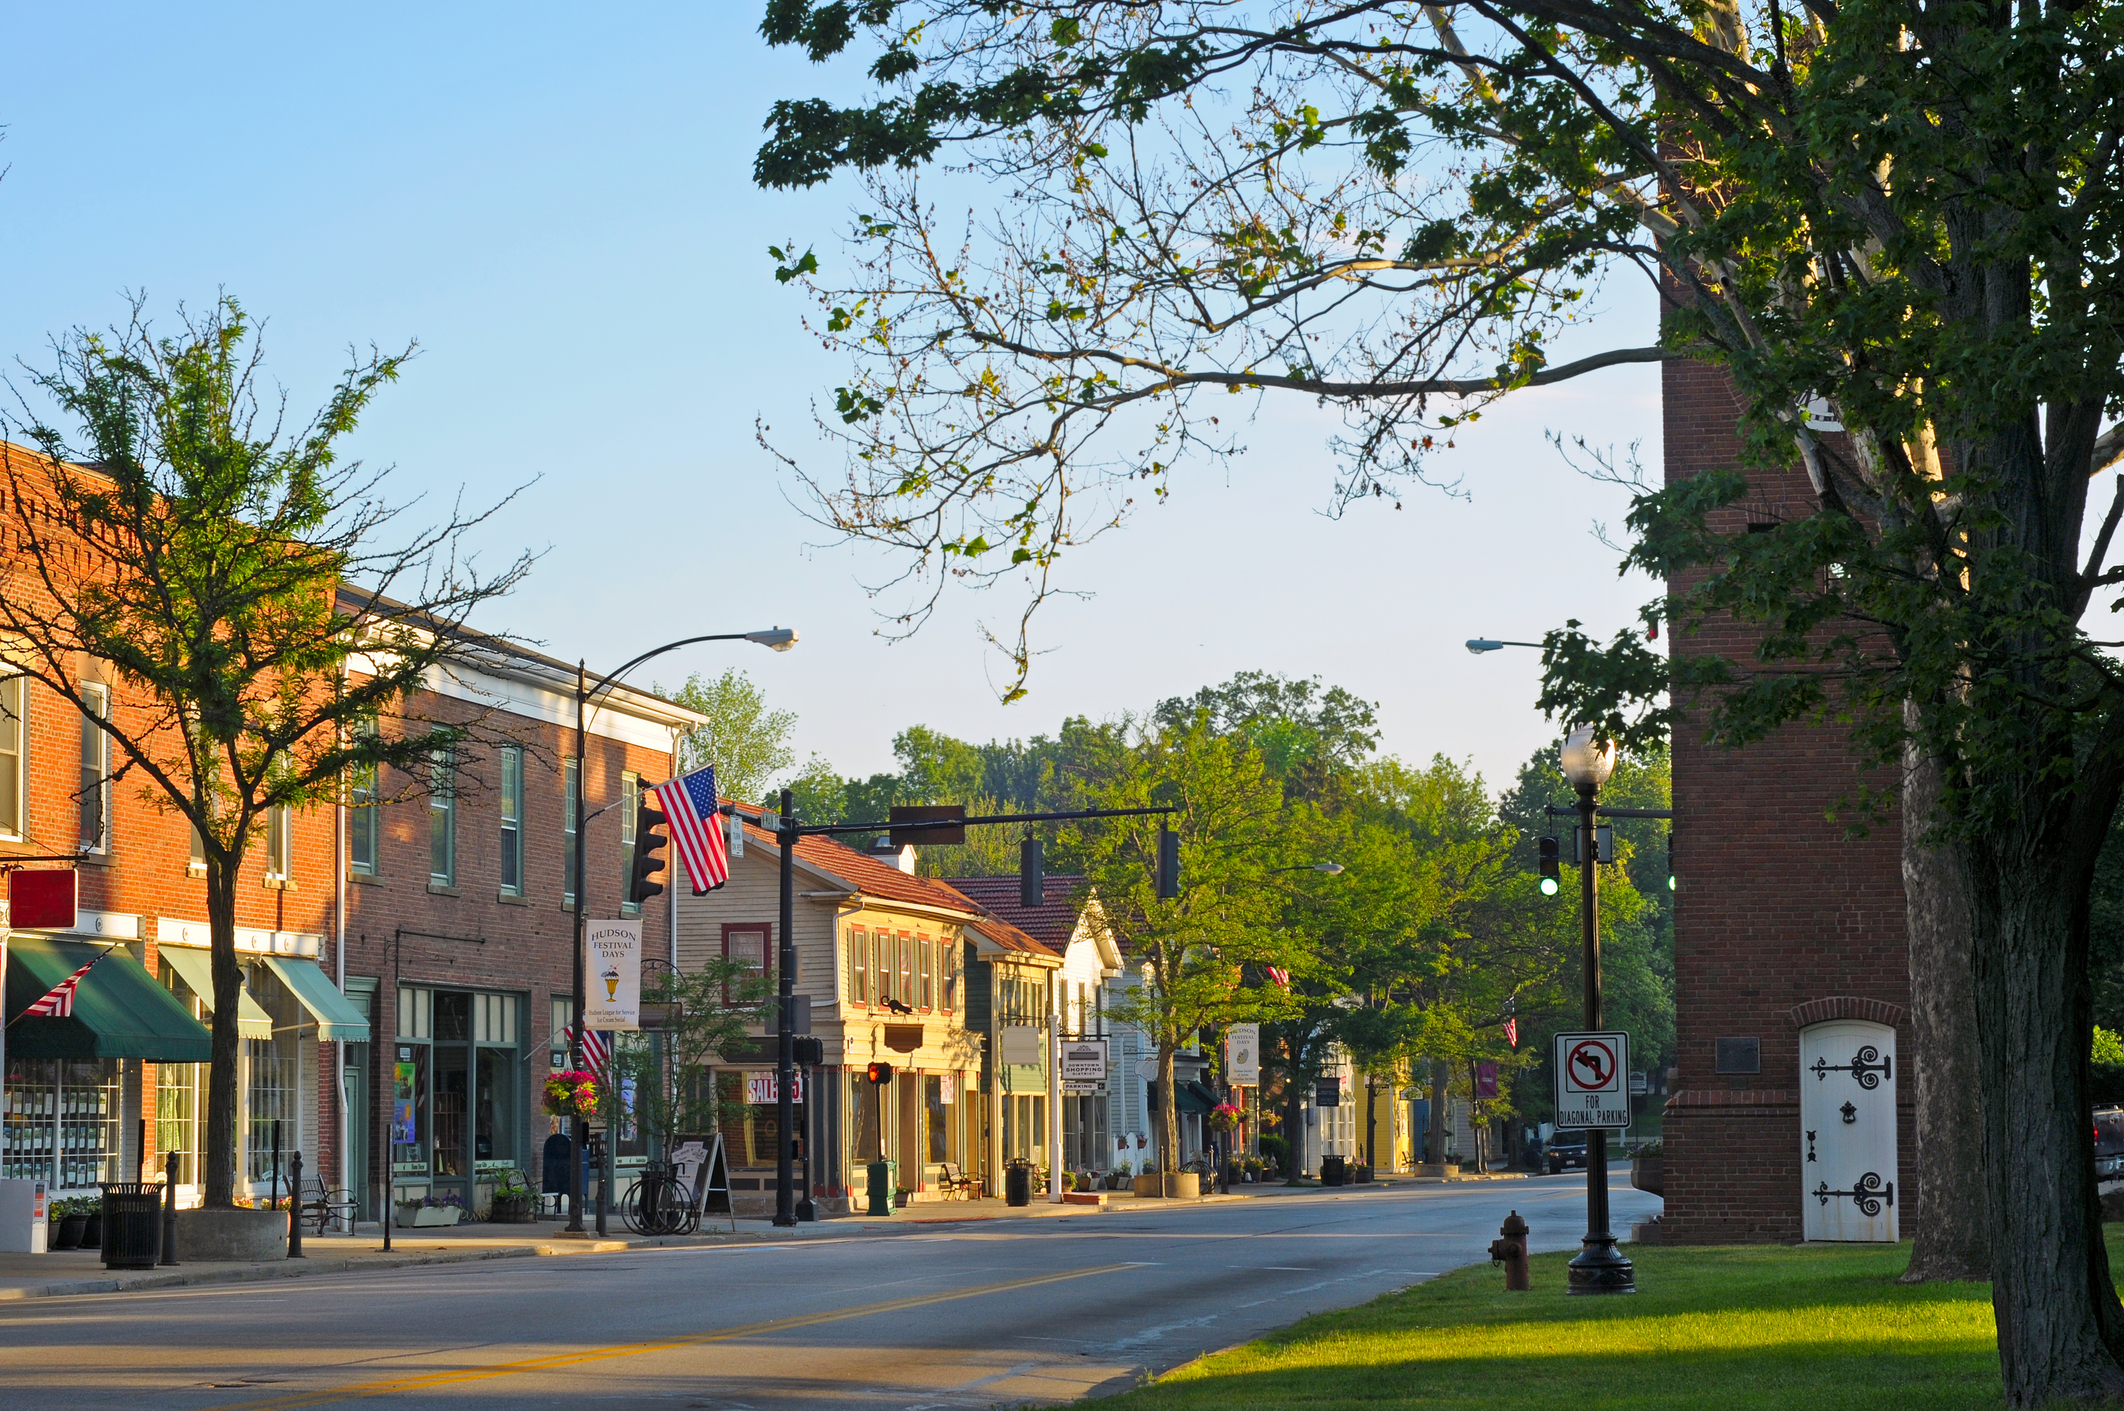 Small Town Not Just For Mellencamp According To Our